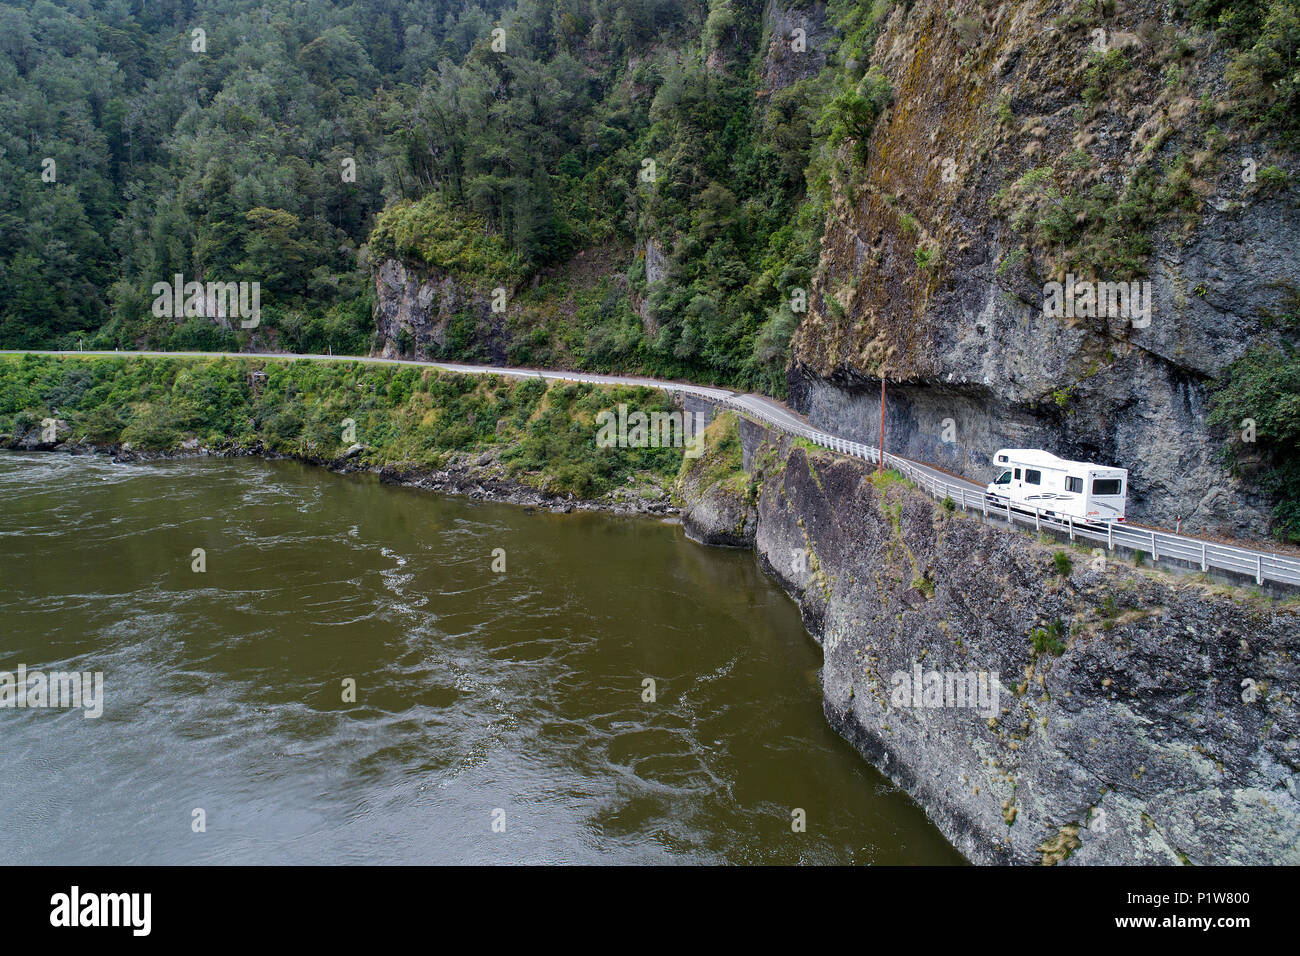 Campervan at Hawks Crag, and Buller River, Buller Gorge, State Highway 6 near Westport, West Coast, South Island, New Zealand - drone aerial - Stock Image